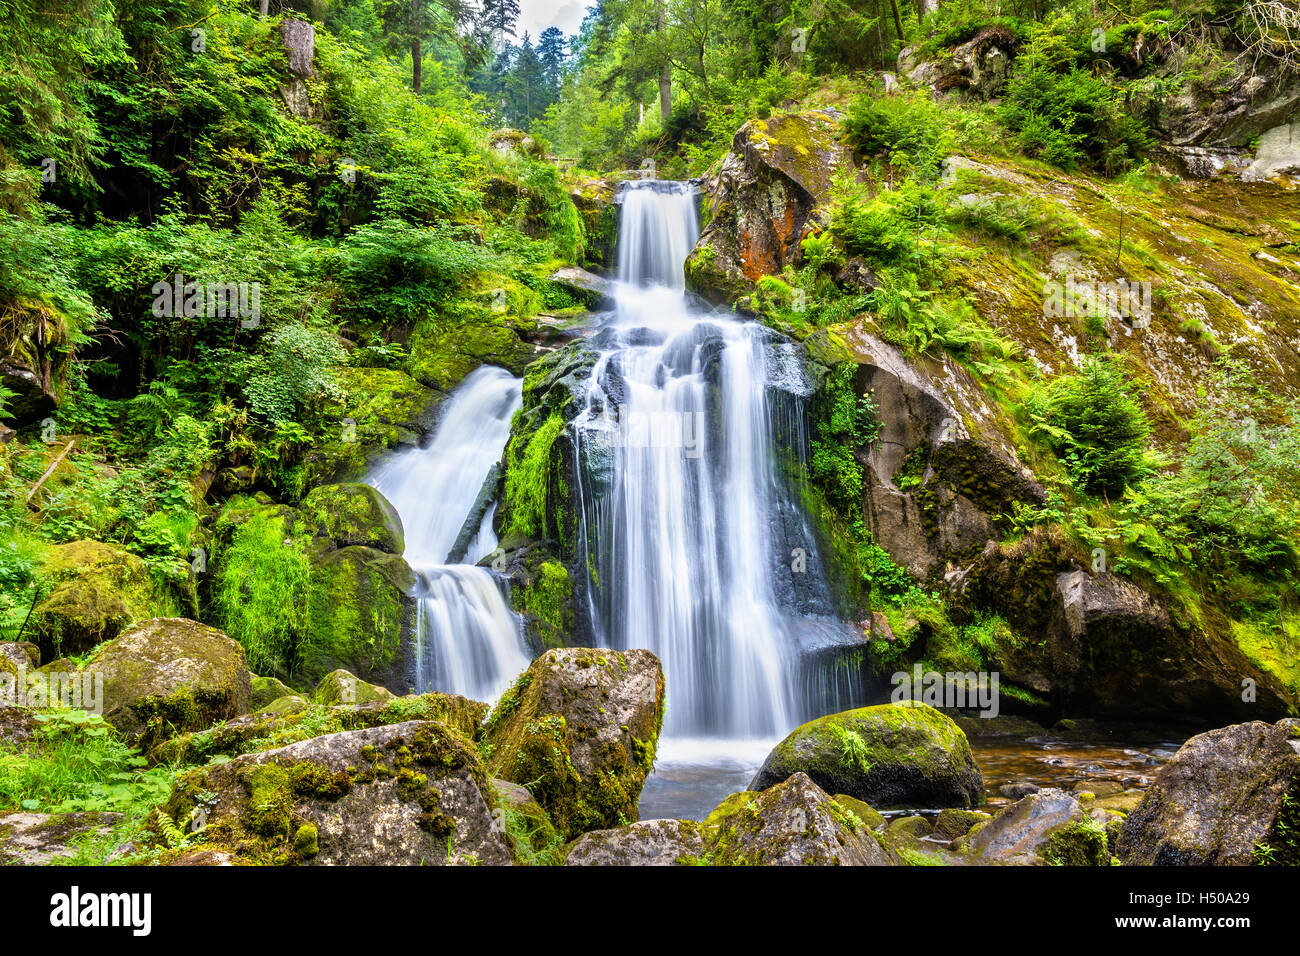 Triberg Falls, one of the highest waterfalls in Germany - Stock Image